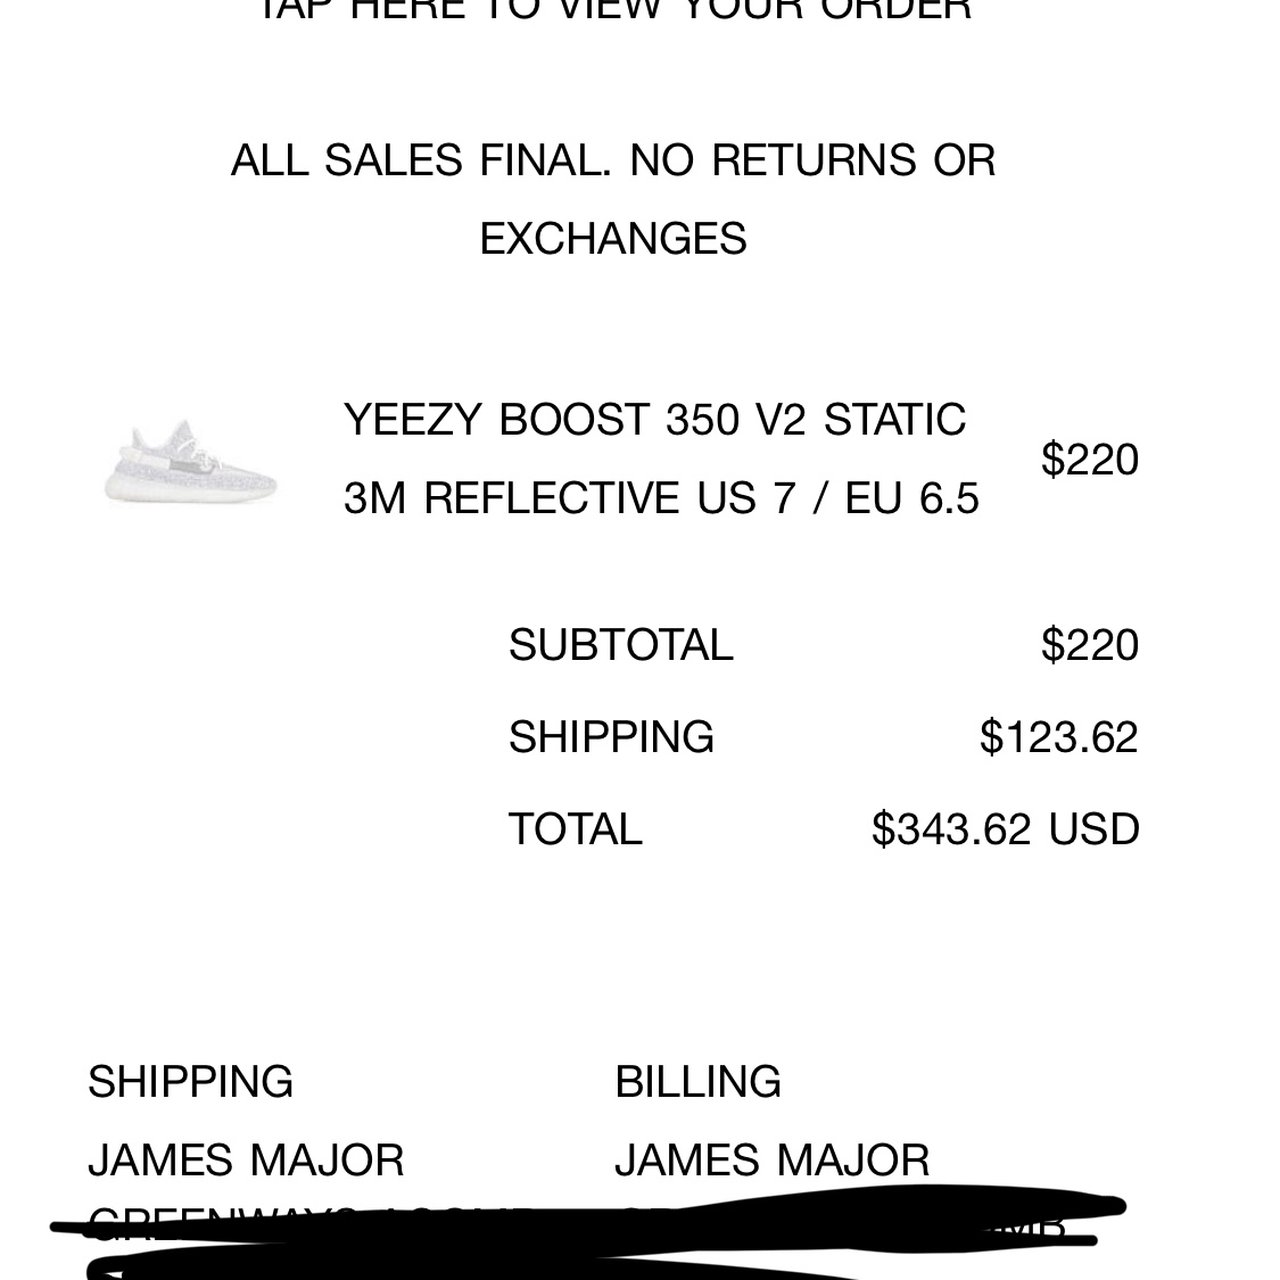 53482fe66 YEEZY BOOST 350 V2 STATIC 3M REFLECTIVE. Yeezy Supply Very a - Depop